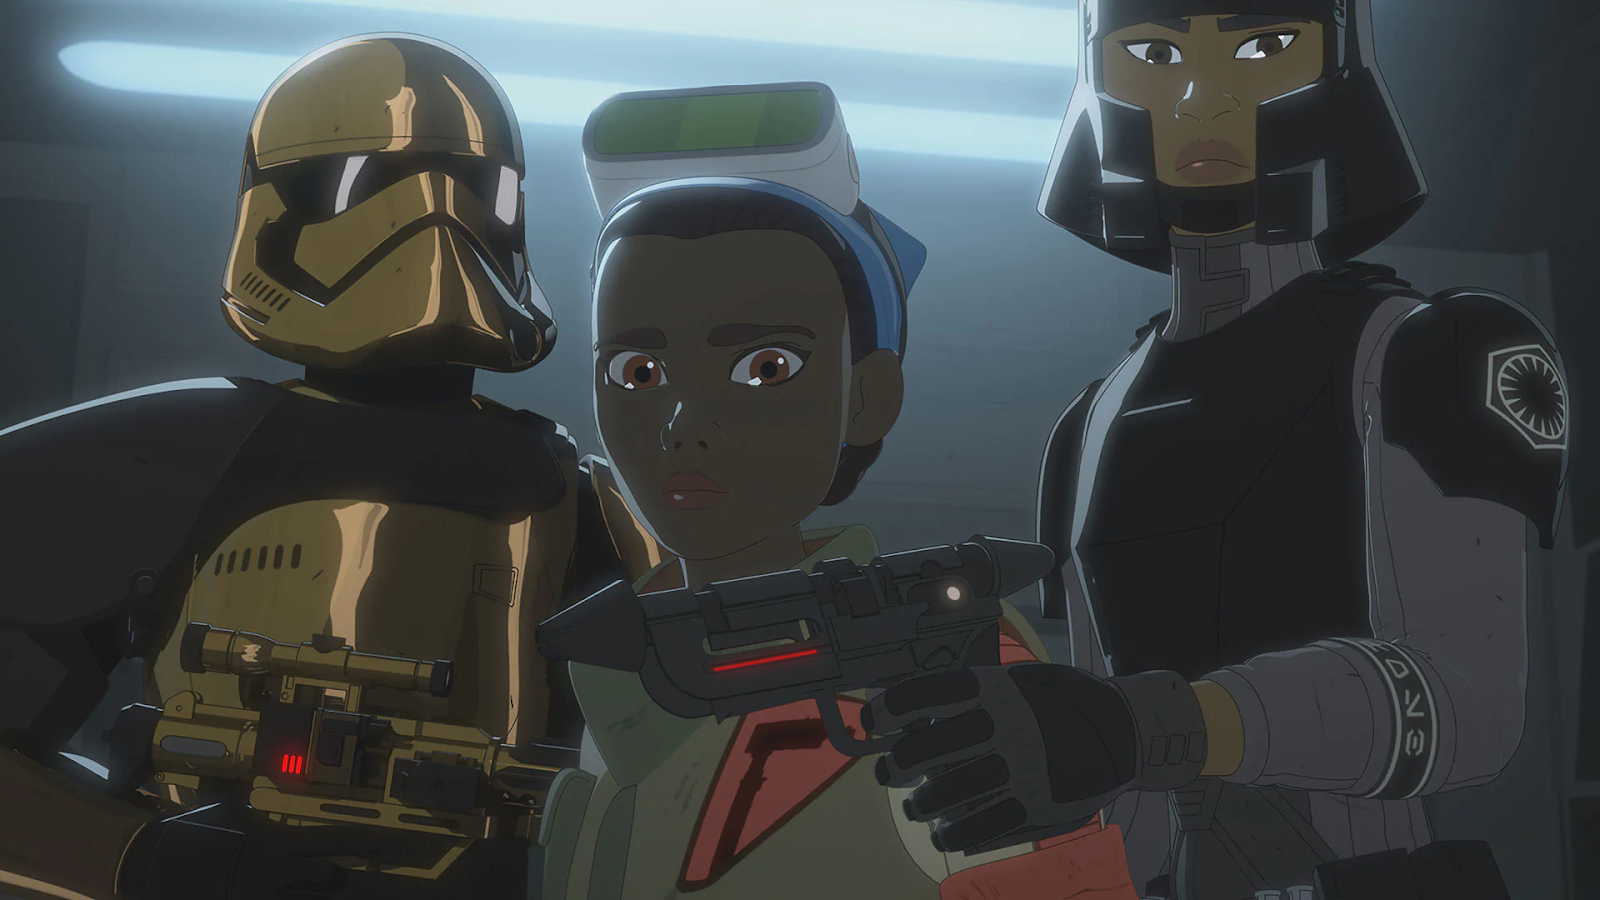 Tam Ryvora is standing next to two soldiers in the First Order.